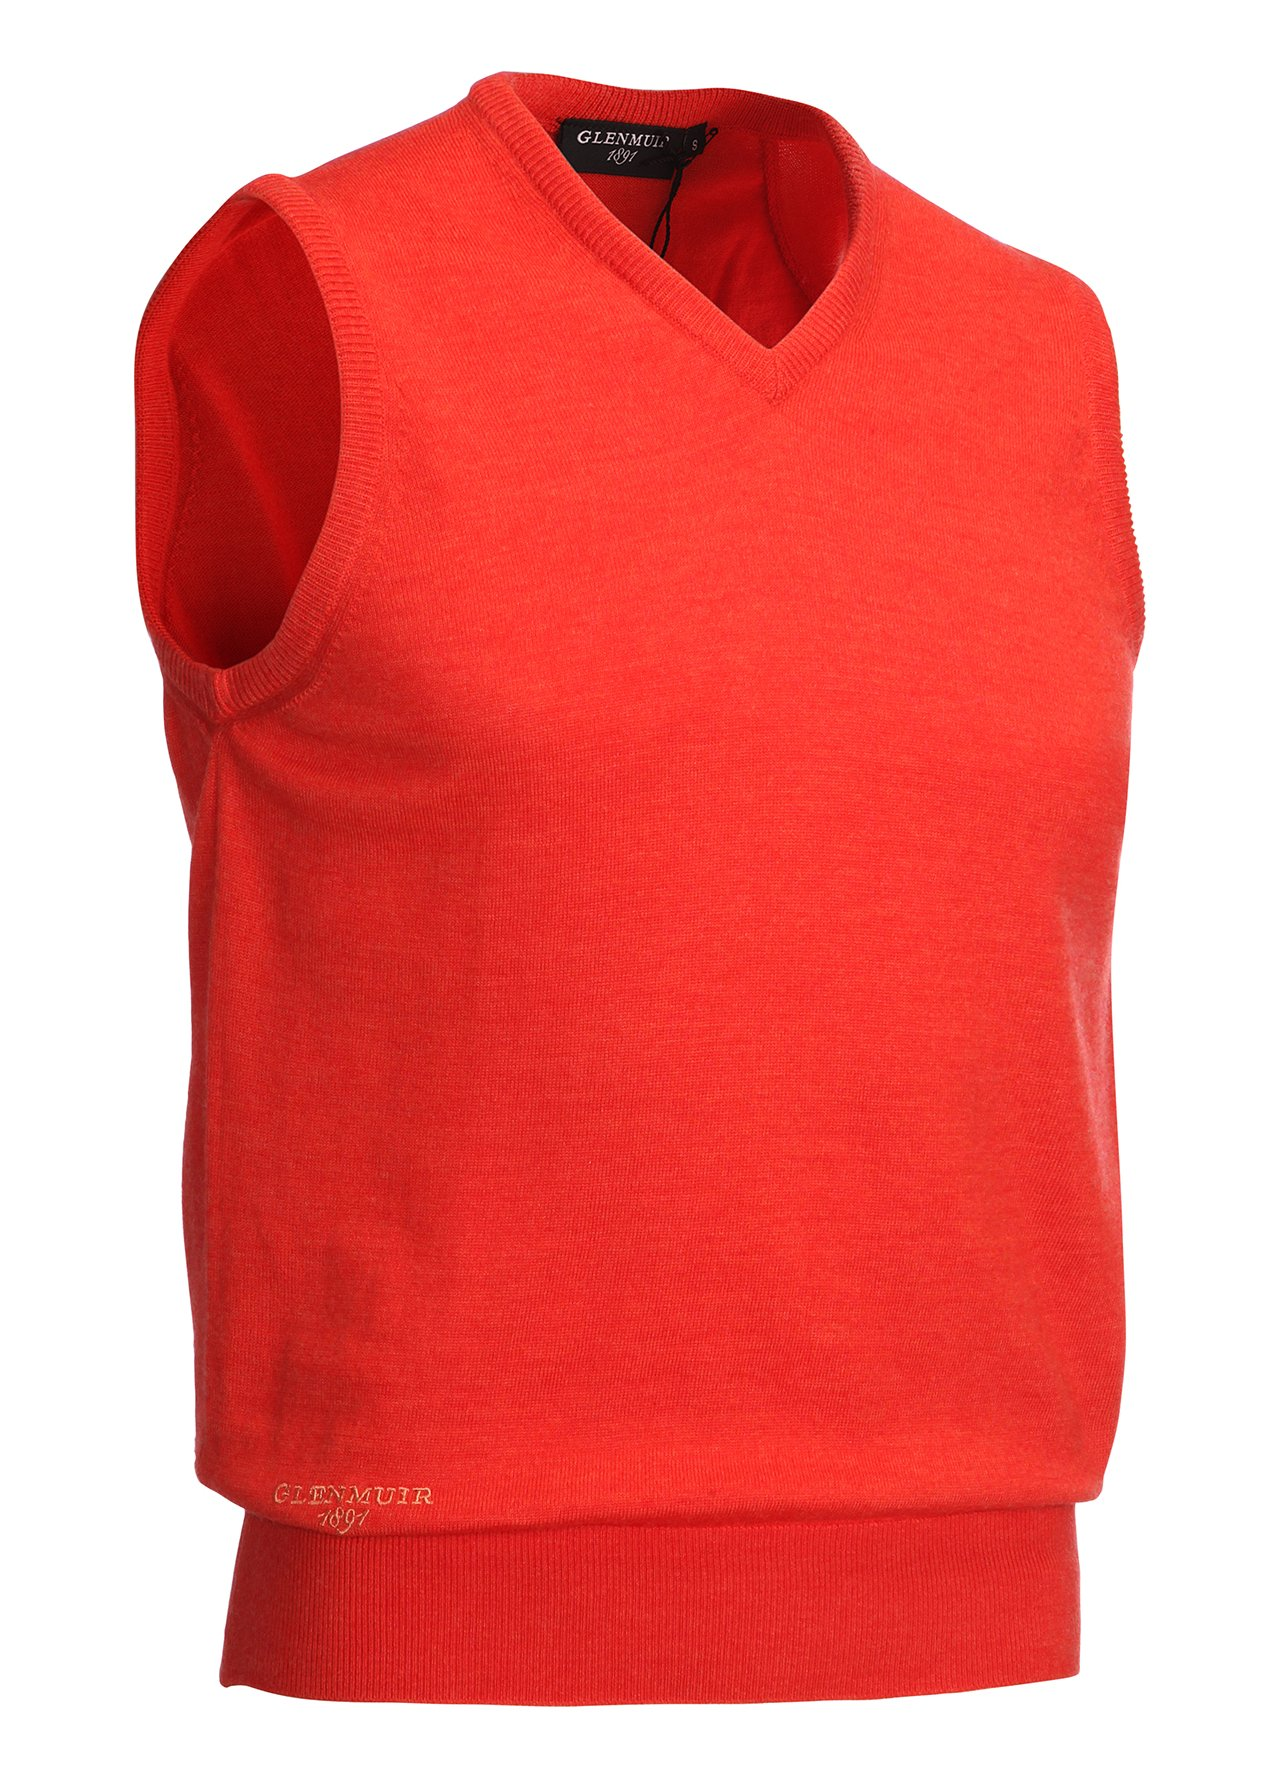 Shop the WoolOvers range of men's sleeveless jumpers & cardigans today. Free UK Delivery available on all knitwear!